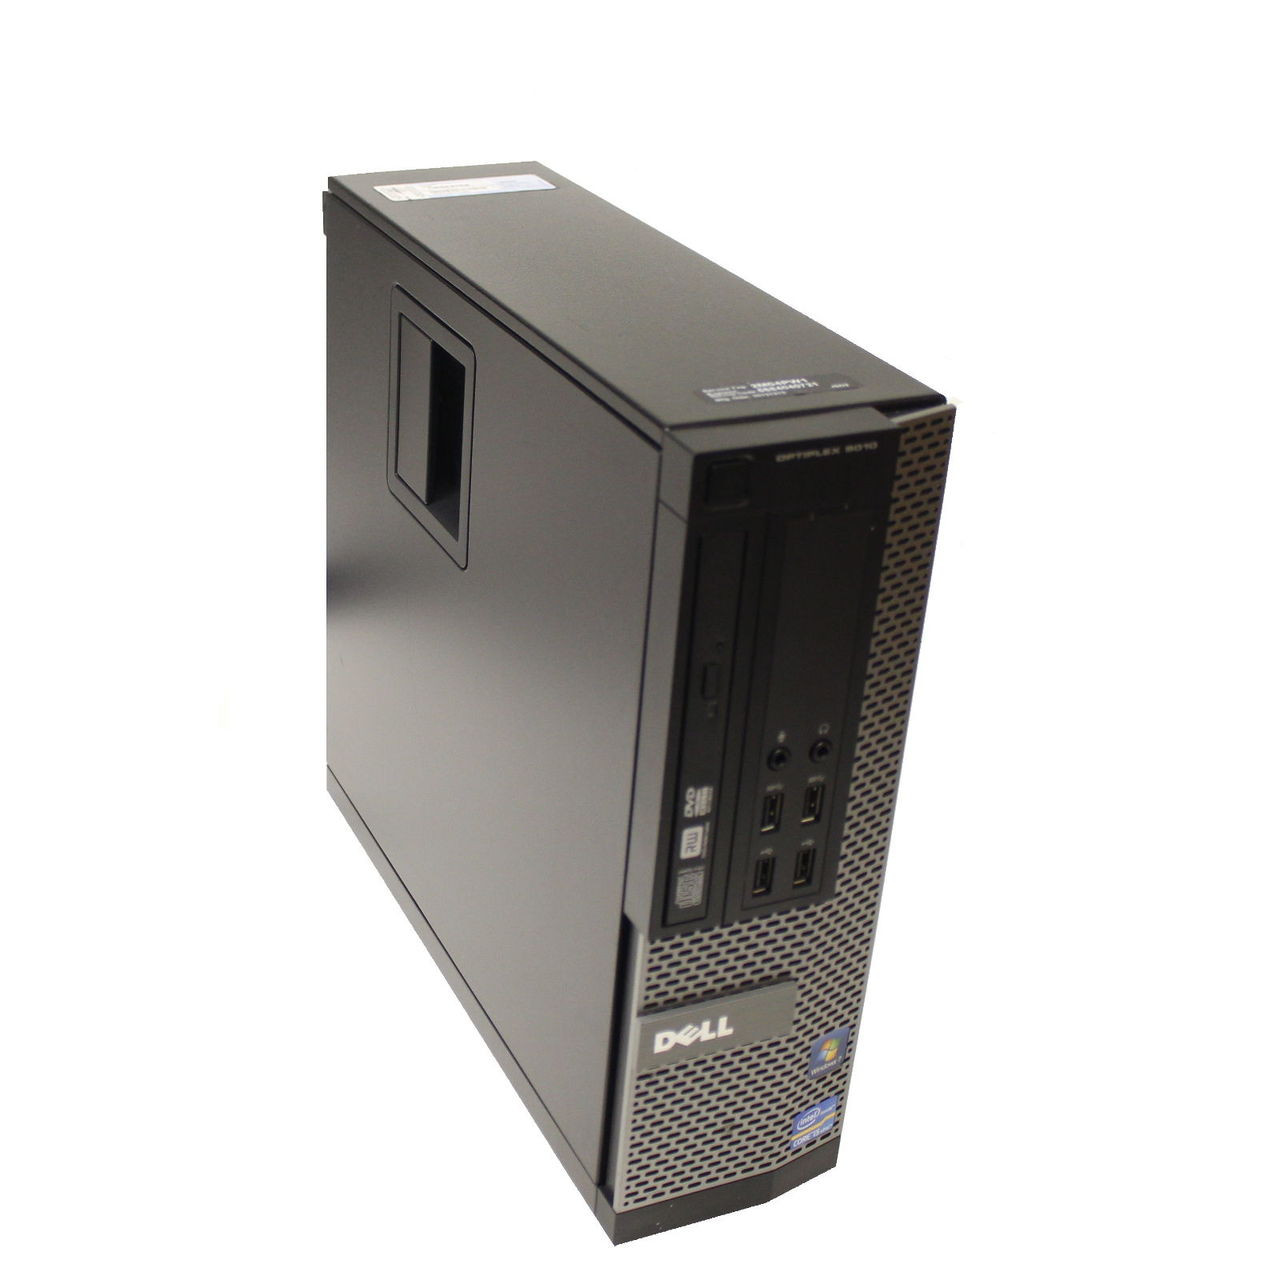 Dell Optiplex 9010 SFF - Front View 3